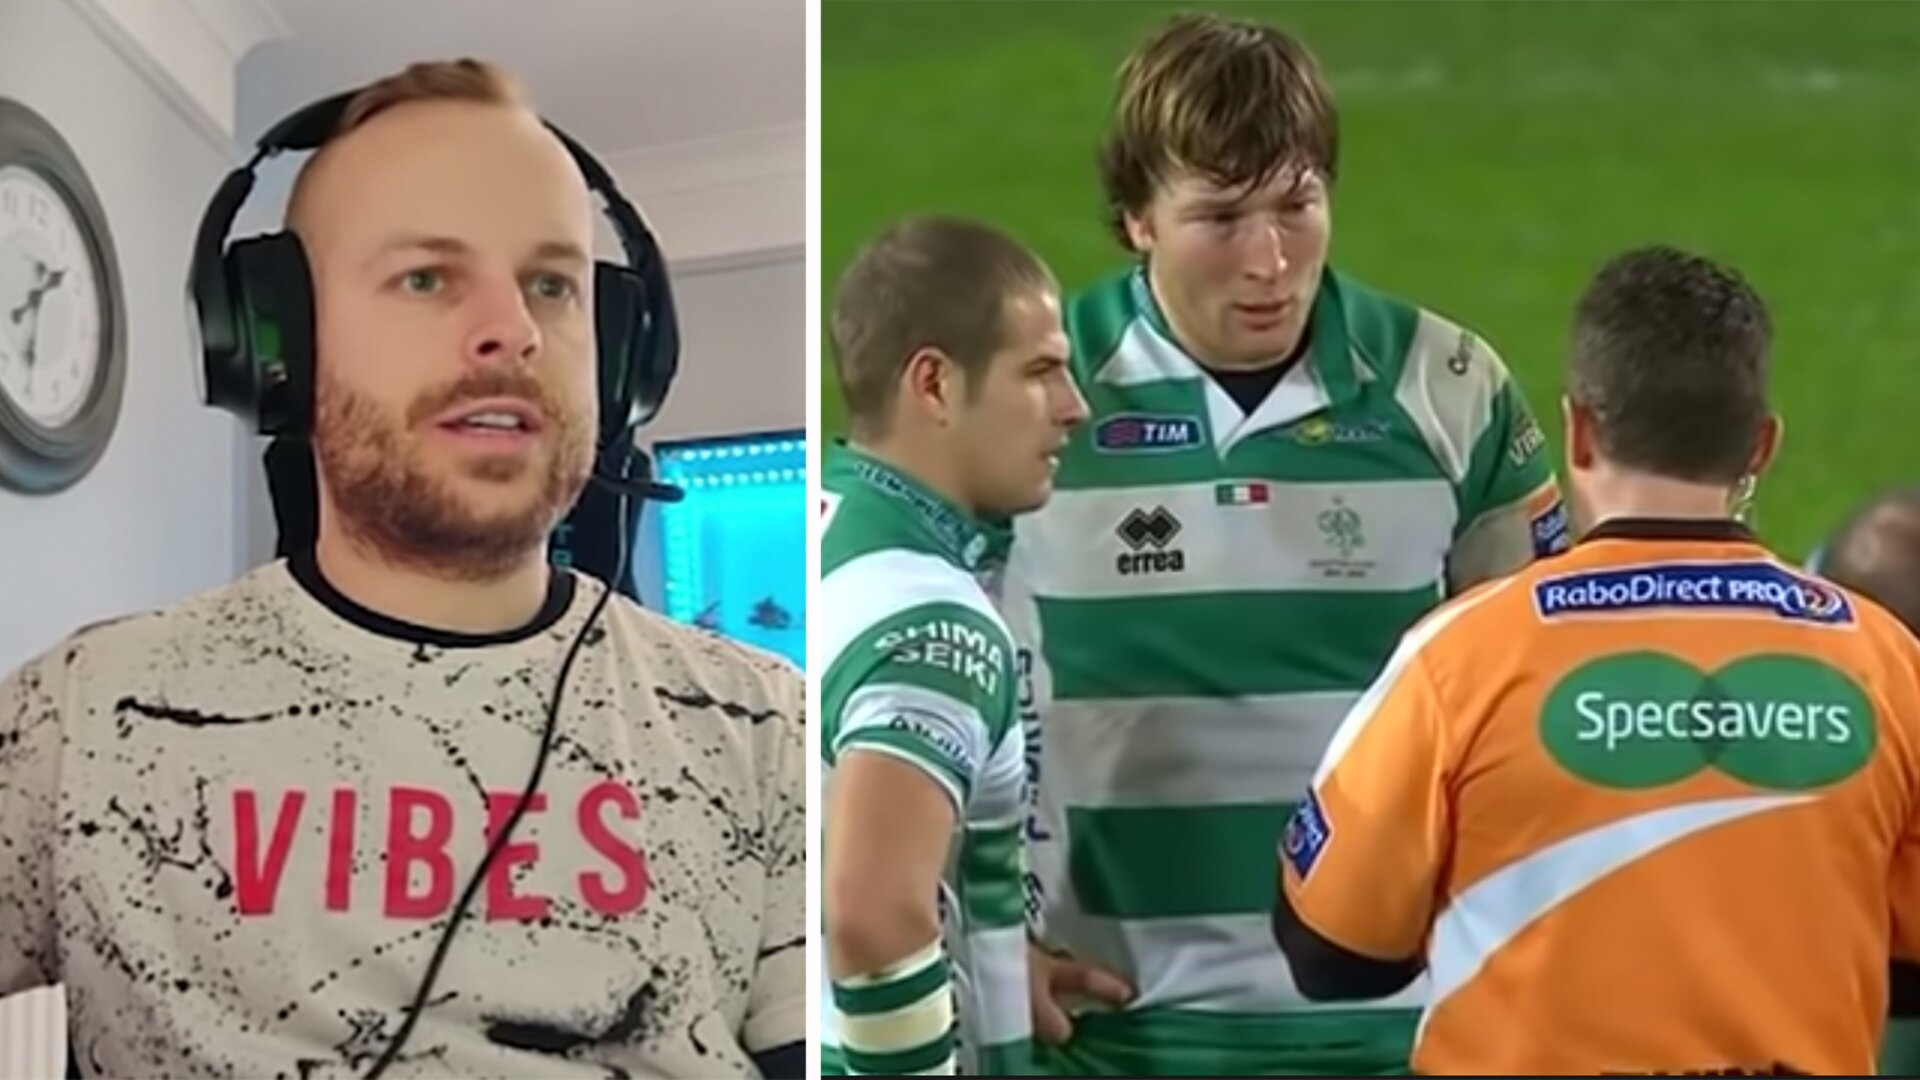 Video shows football referee lost for words at respect rugby referees enjoy